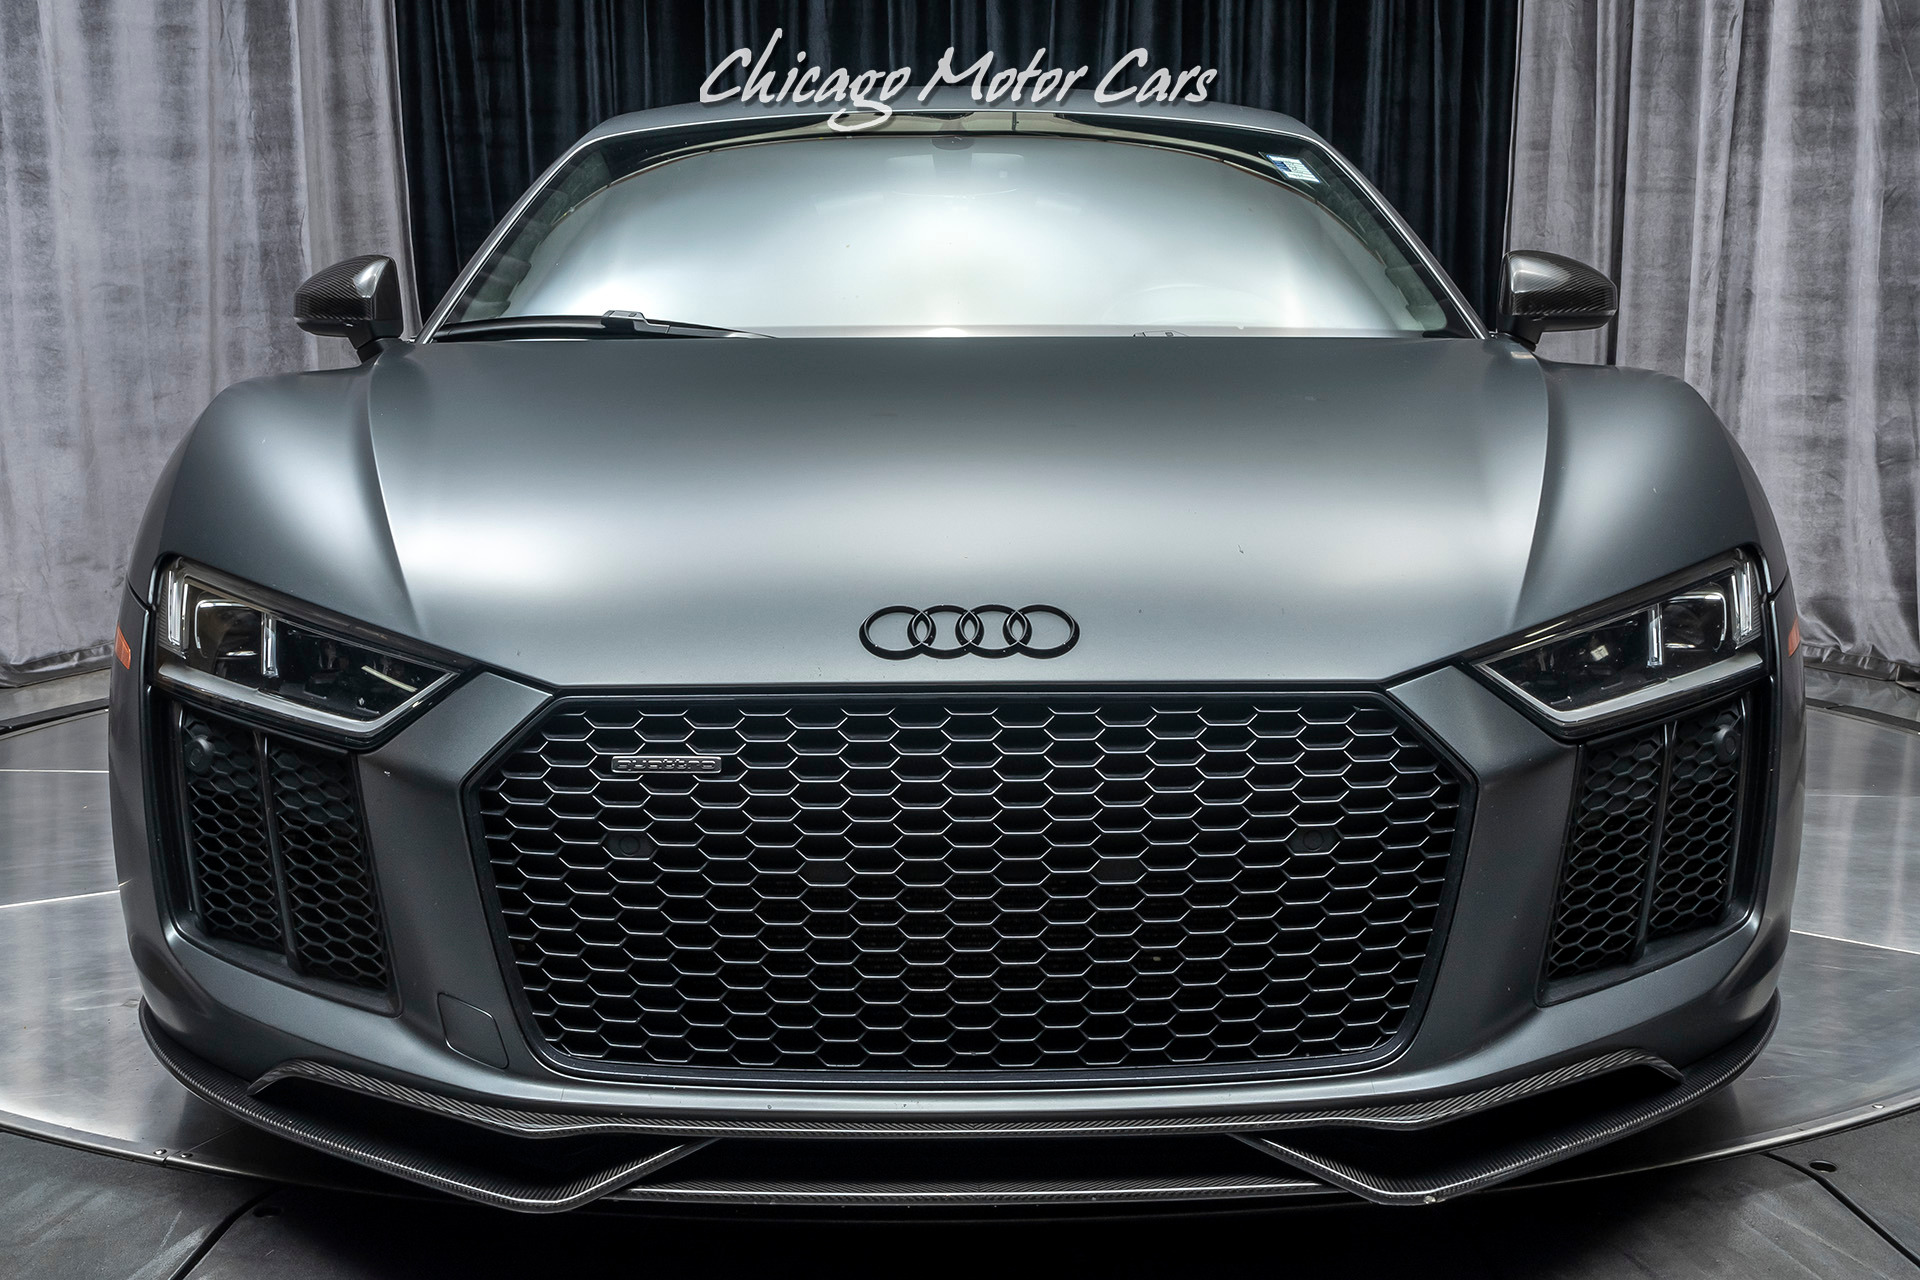 Used 2017 Audi R8 V10 Plus Quattro S Tronic Coupe Msrp 210k Factory Matte Paint For Sale Special Pricing Chicago Motor Cars Stock 17033